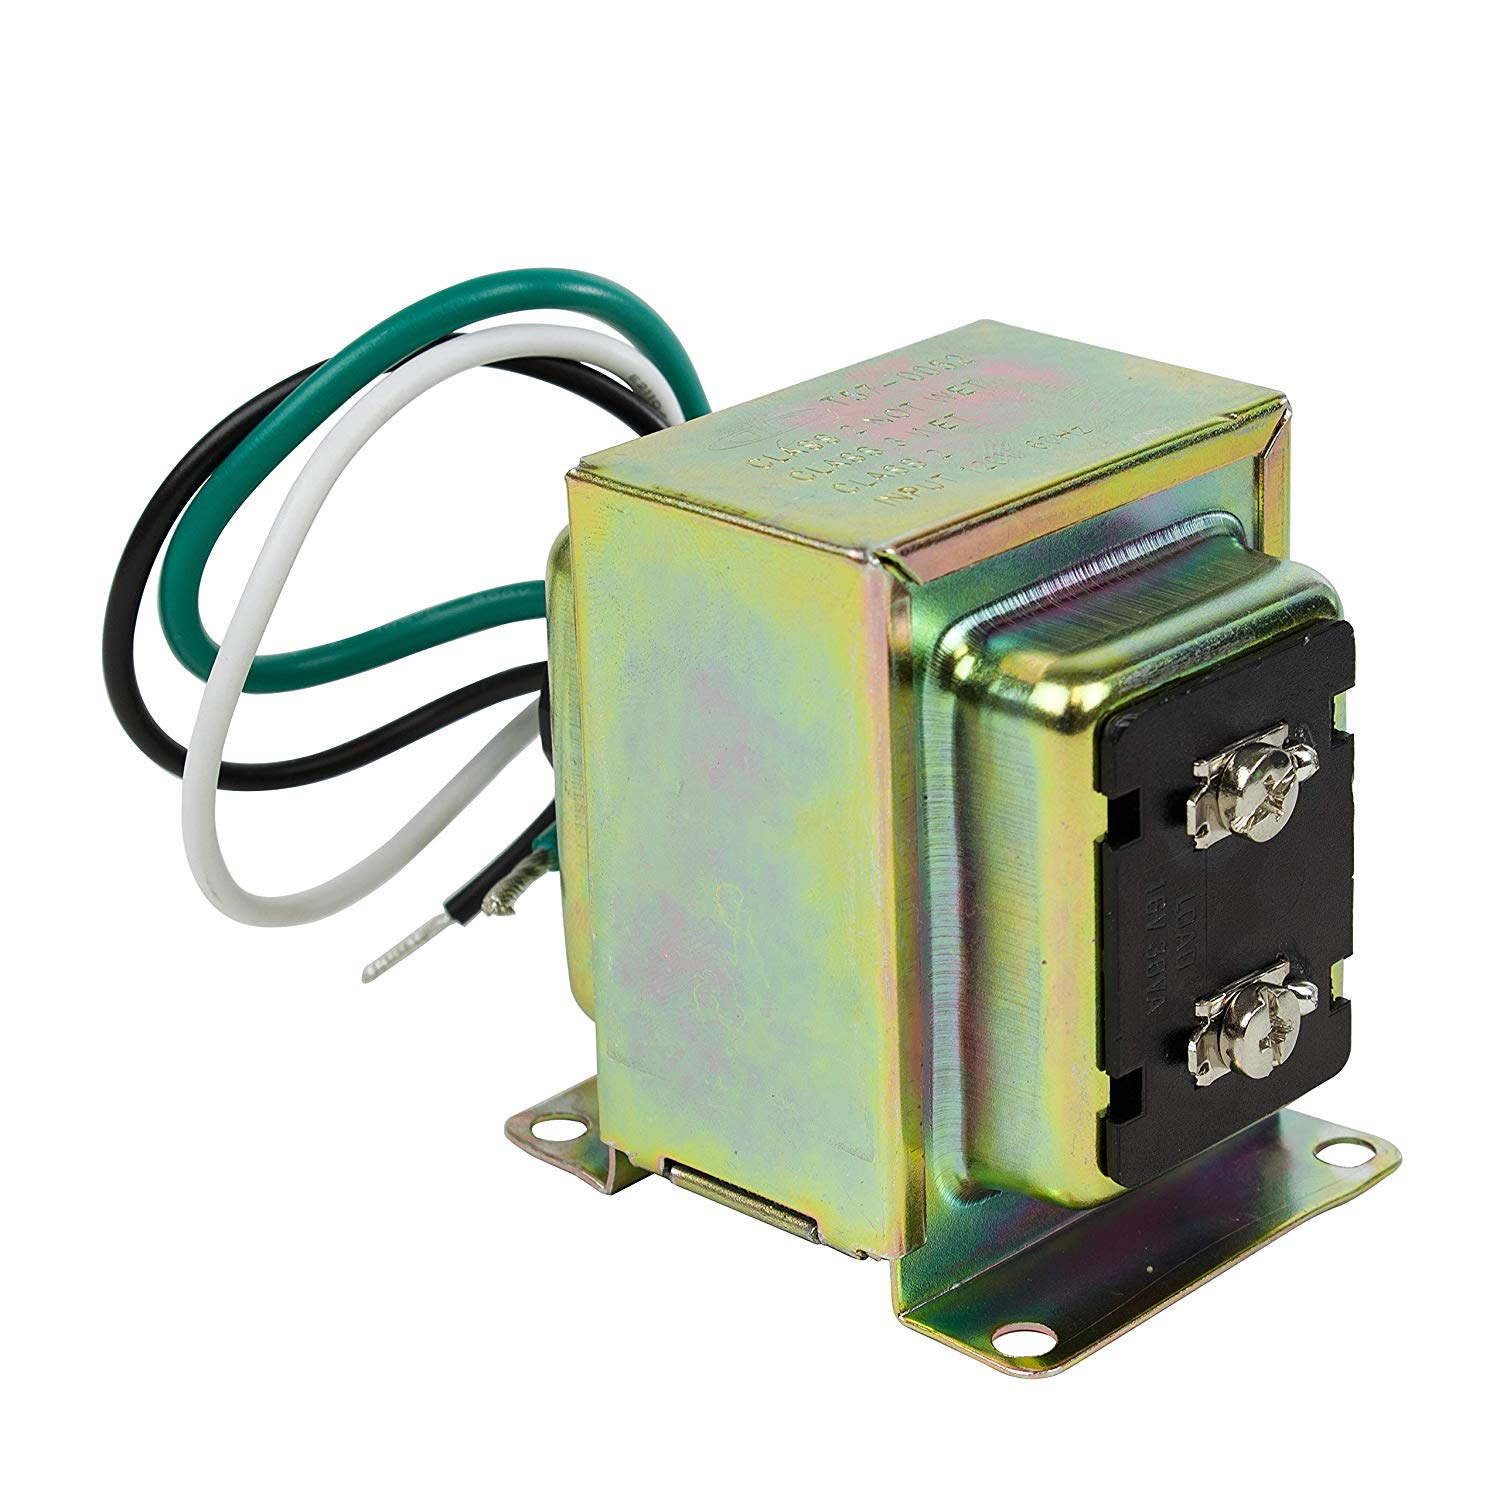 Newhouse Hardware 16V 30A Transformer (Compatible with Ring Doorbell, Nest Thermostats and more)